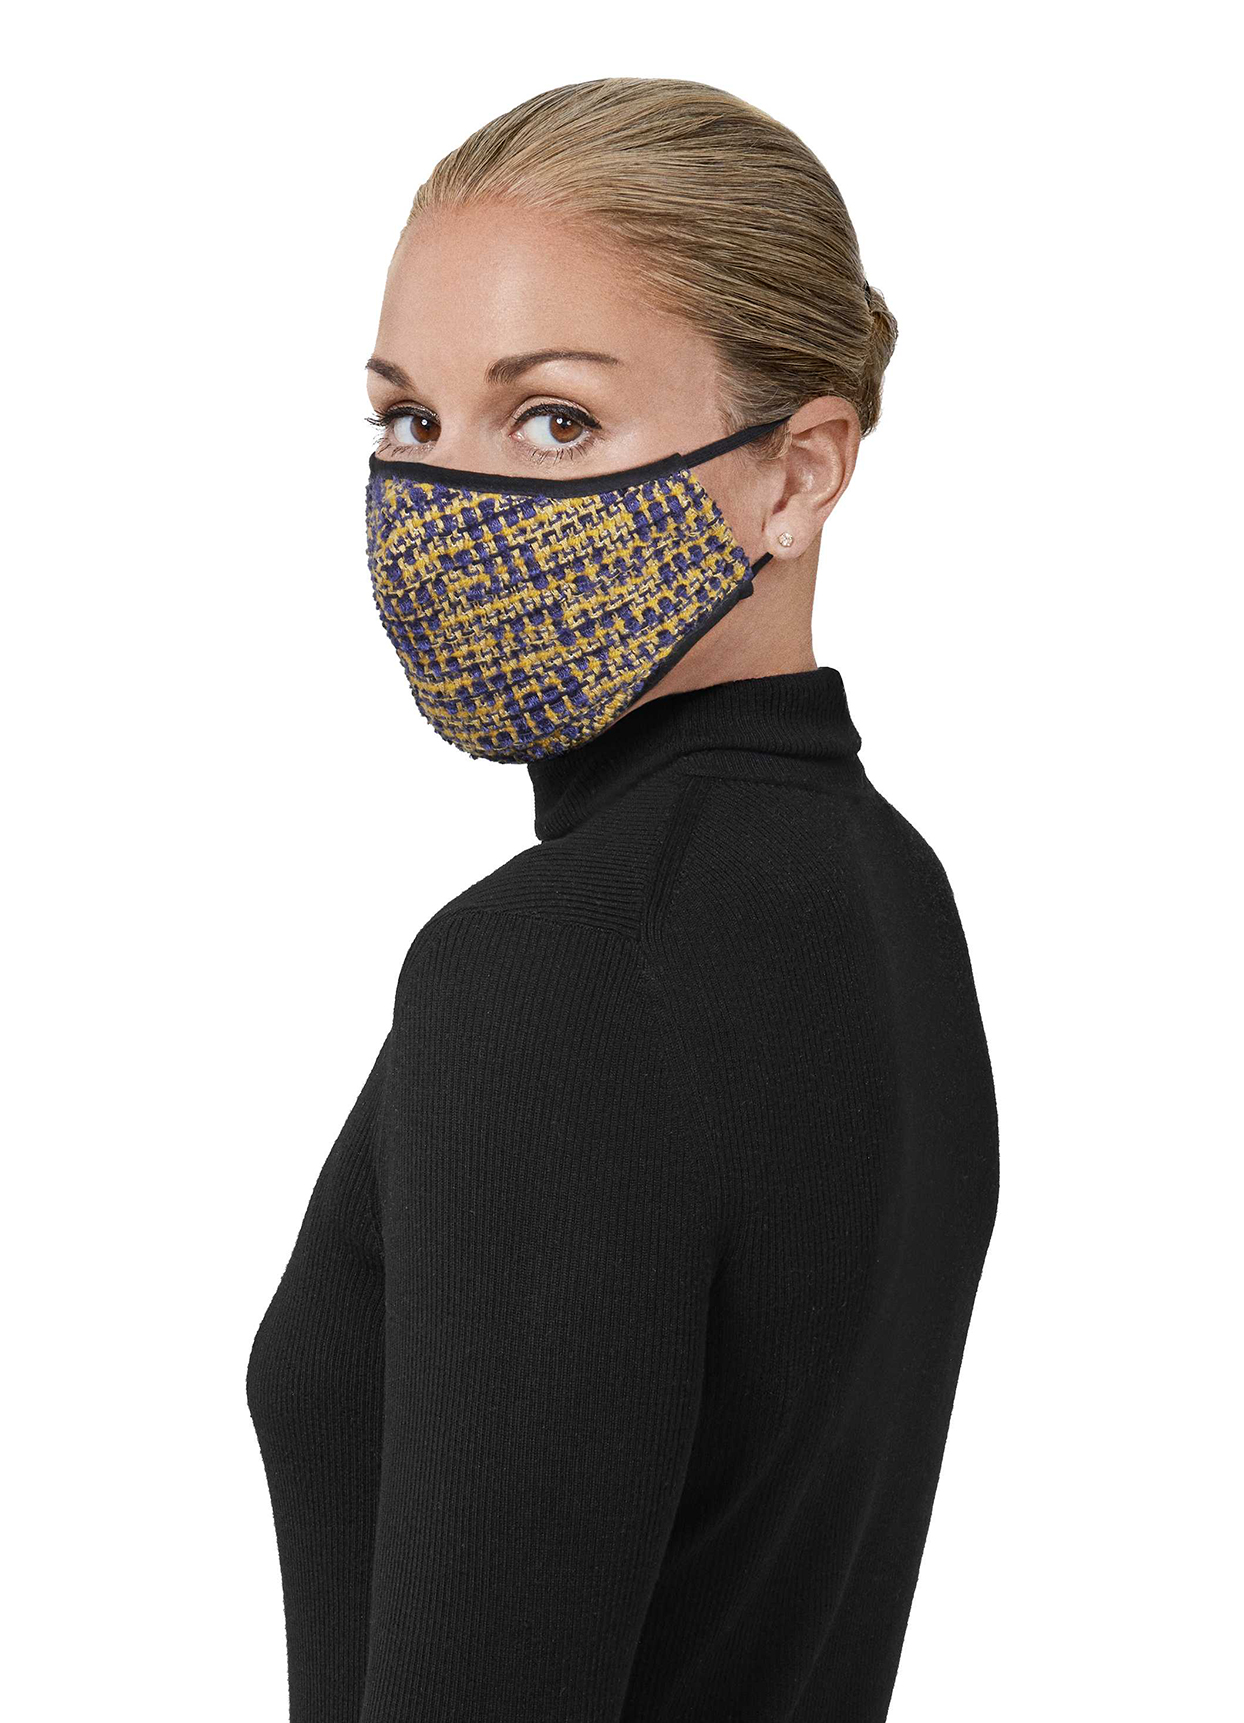 St. John Boucle Fitted Tweed Mask